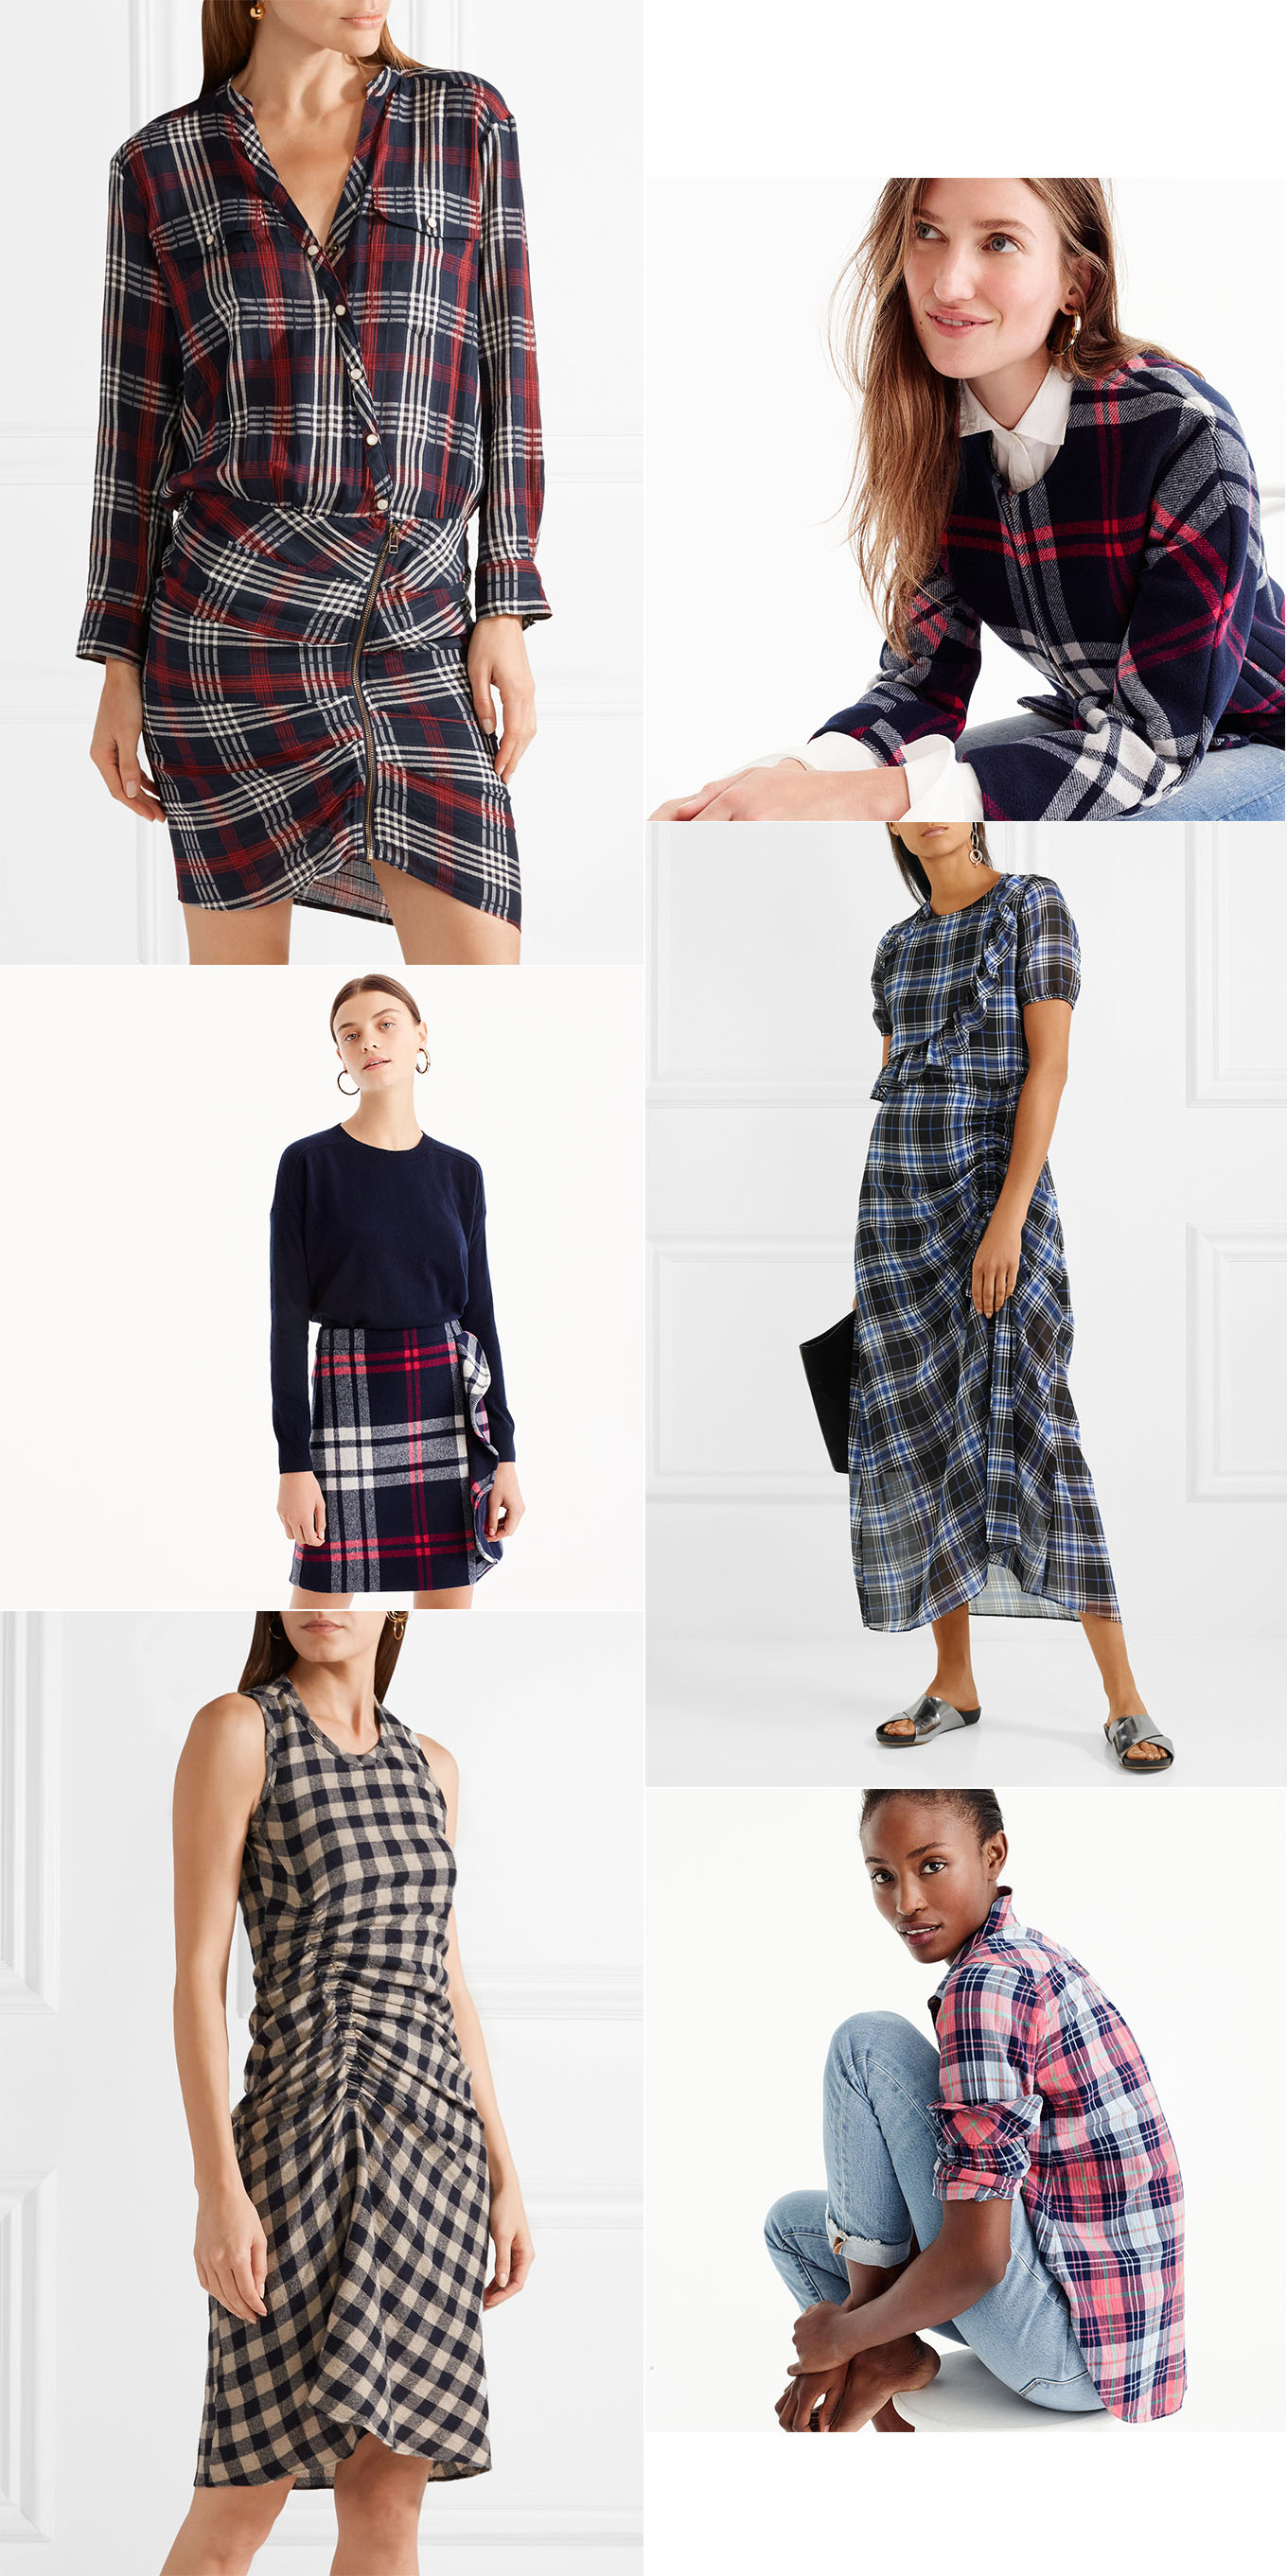 Ridgely Brode is gravitating to all things Plaid this Thanksgiving and shares her favorites on her blog, Ridgely's Radar.